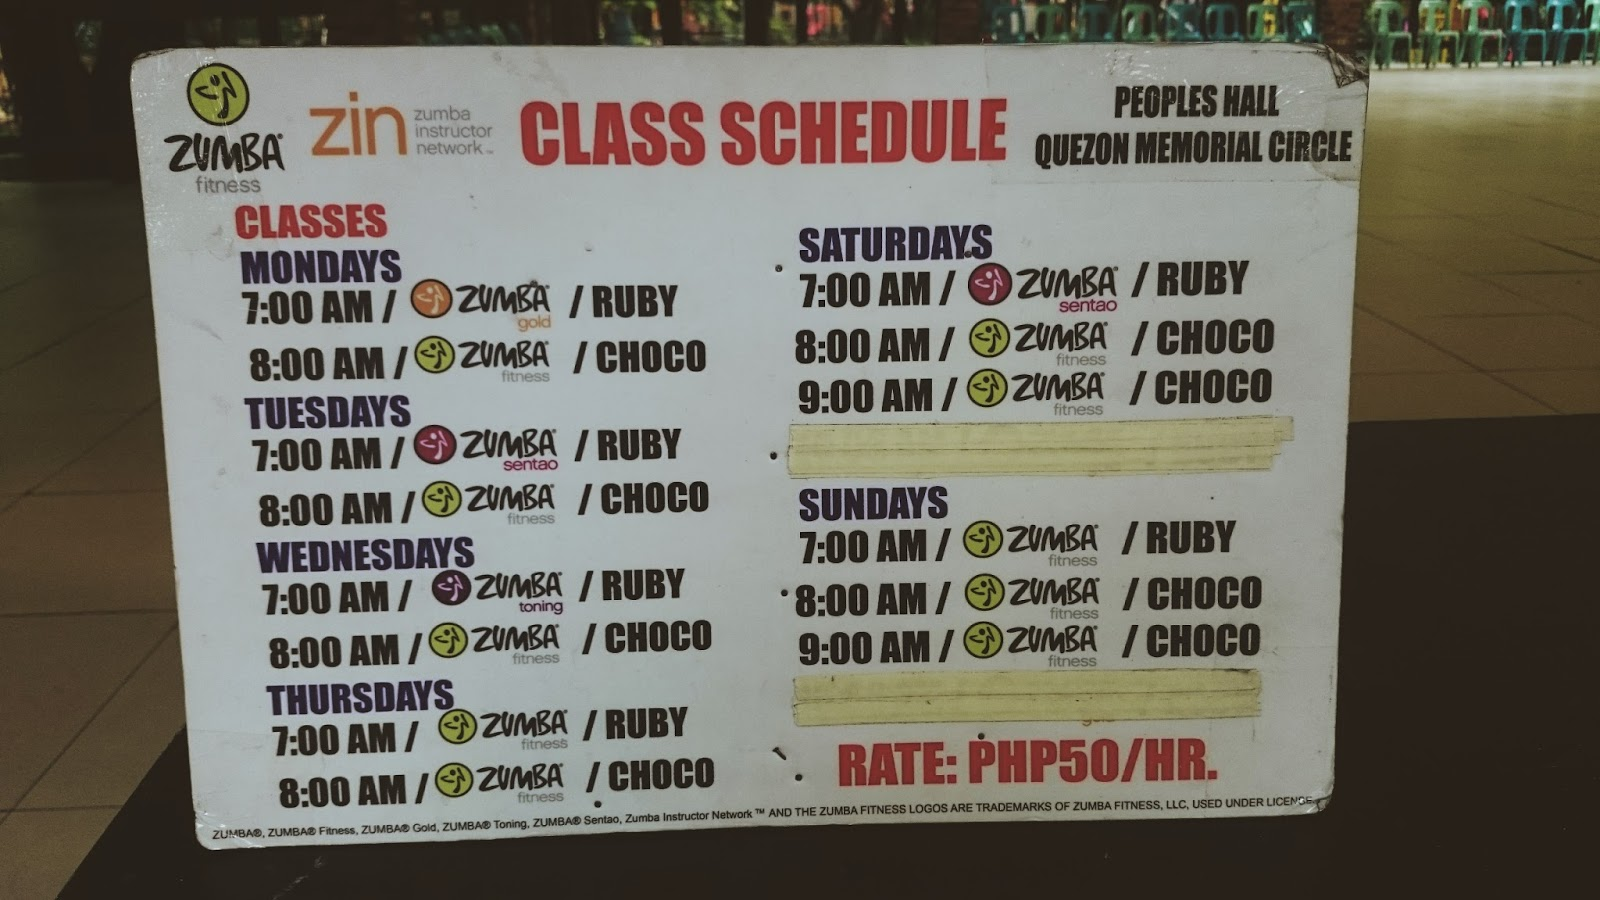 Zumba Schedule - People's Hall, Quezon Memorial Circle